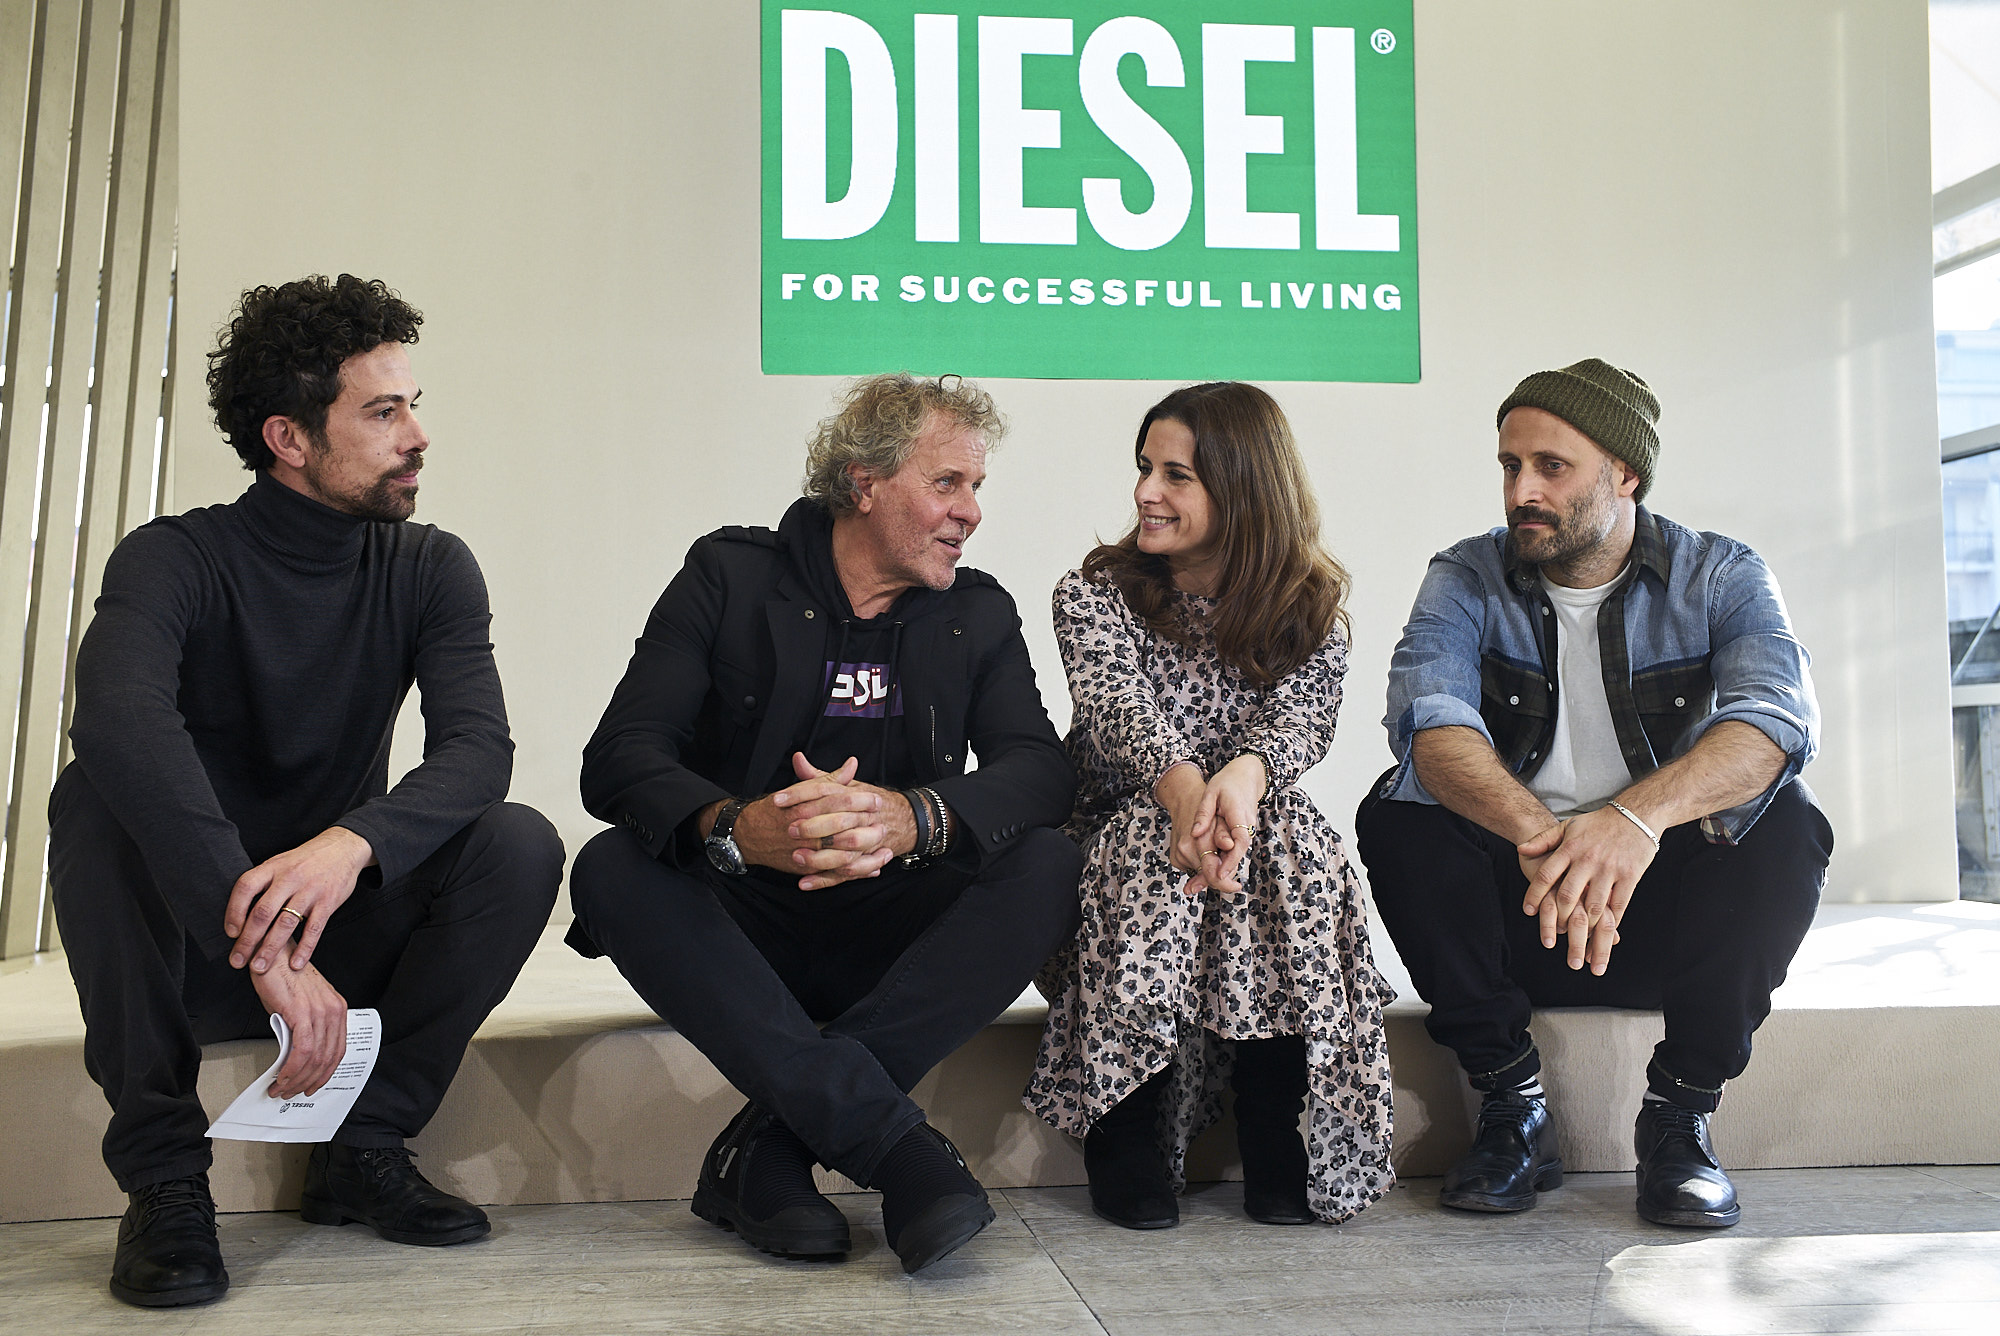 Diesel For Responsible Living